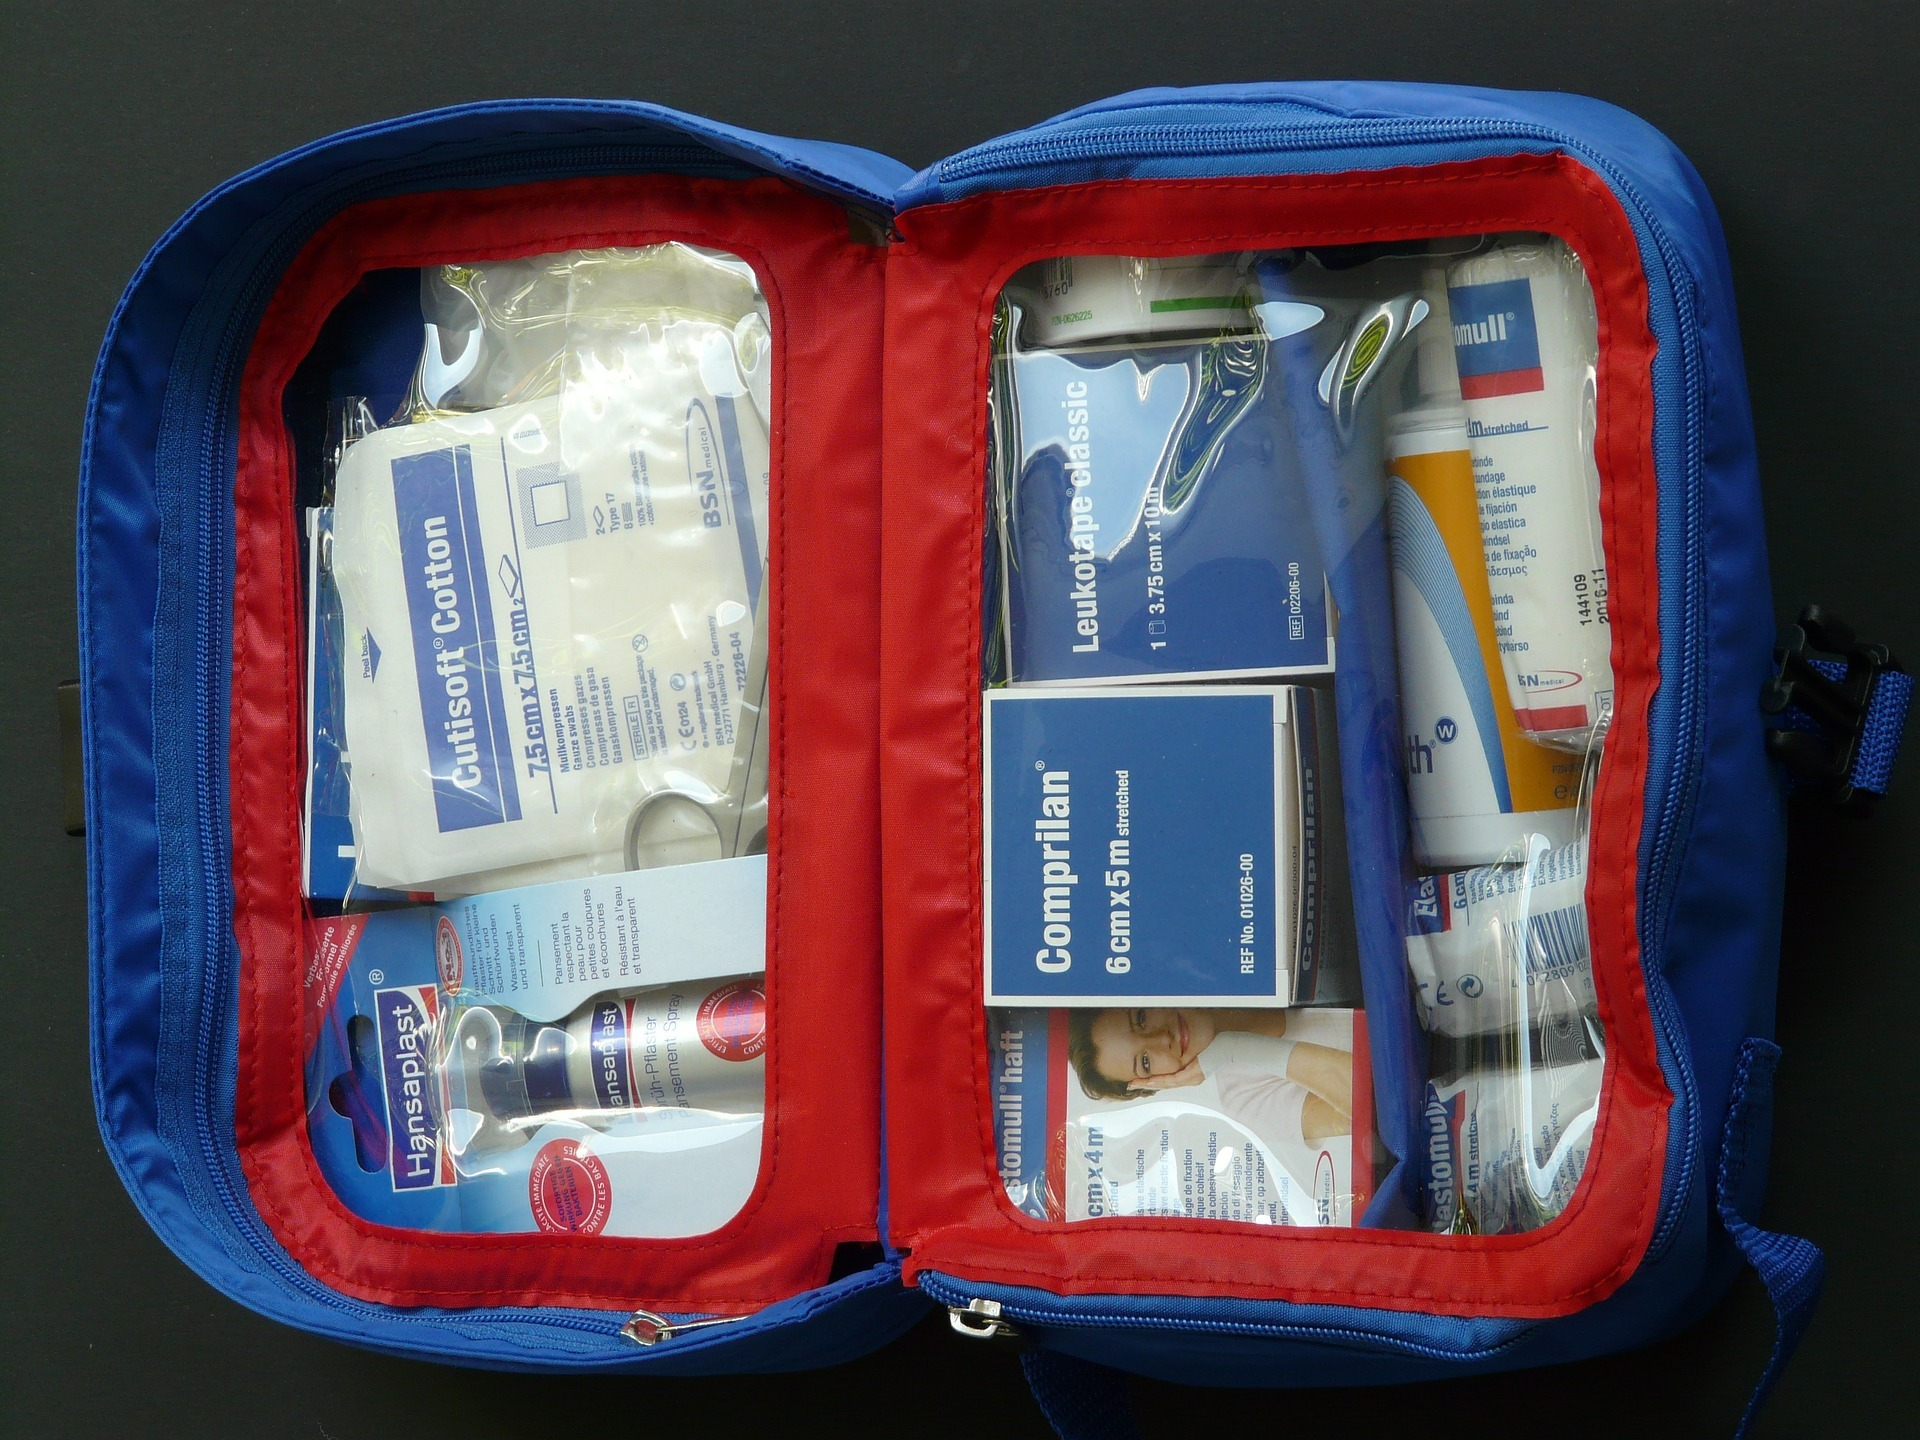 Four important things no traveler should be without - first aid kit